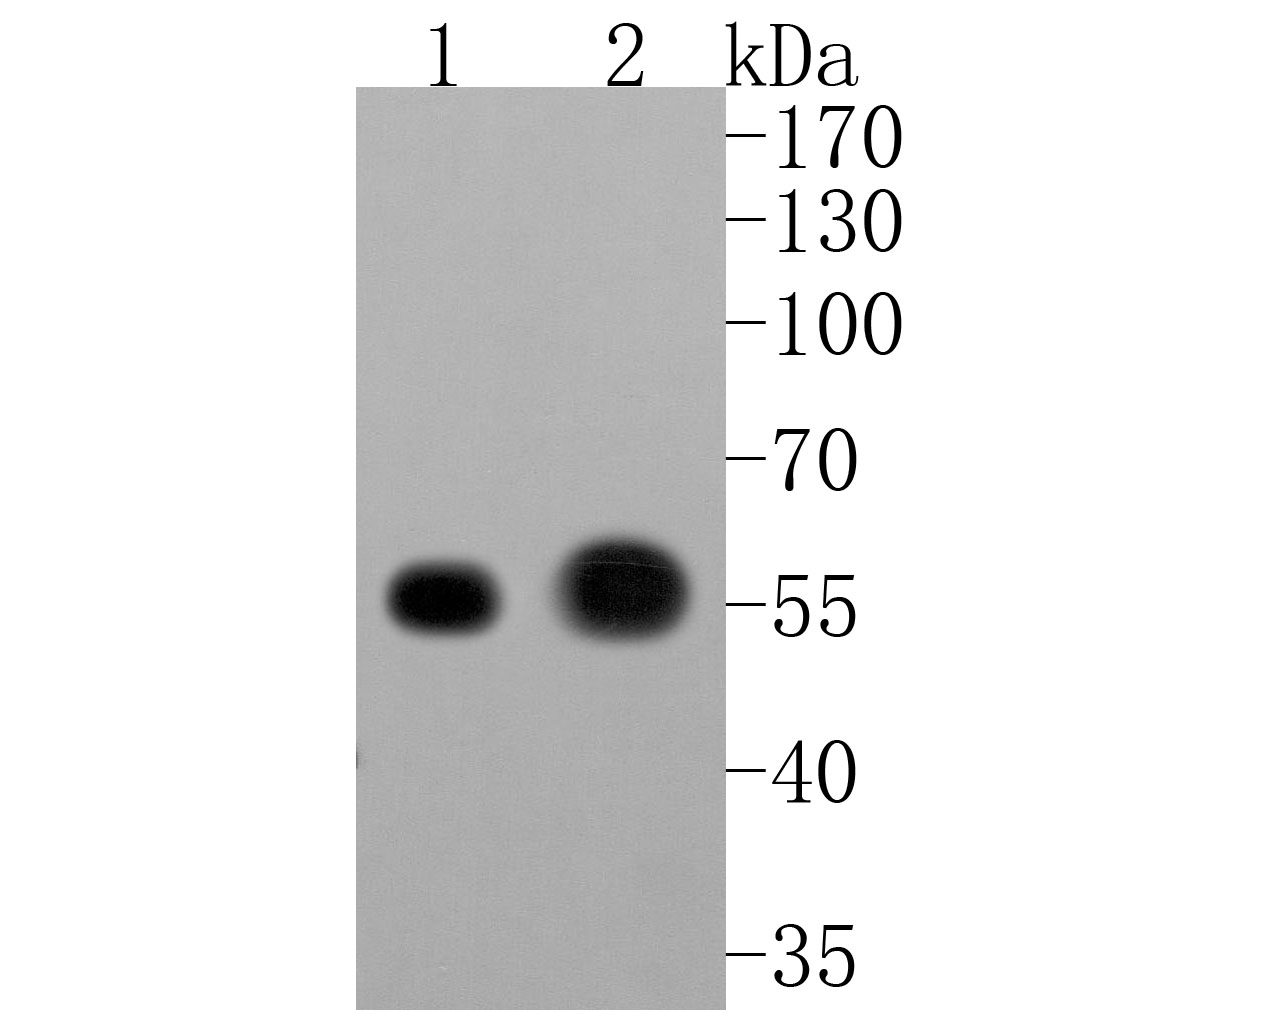 Western blot analysis of CaMKII delta on Human skeletal muscle (1) and Rat heart (2) cells lysates using anti-CaMKII delta antibody at 1/500 dilution.